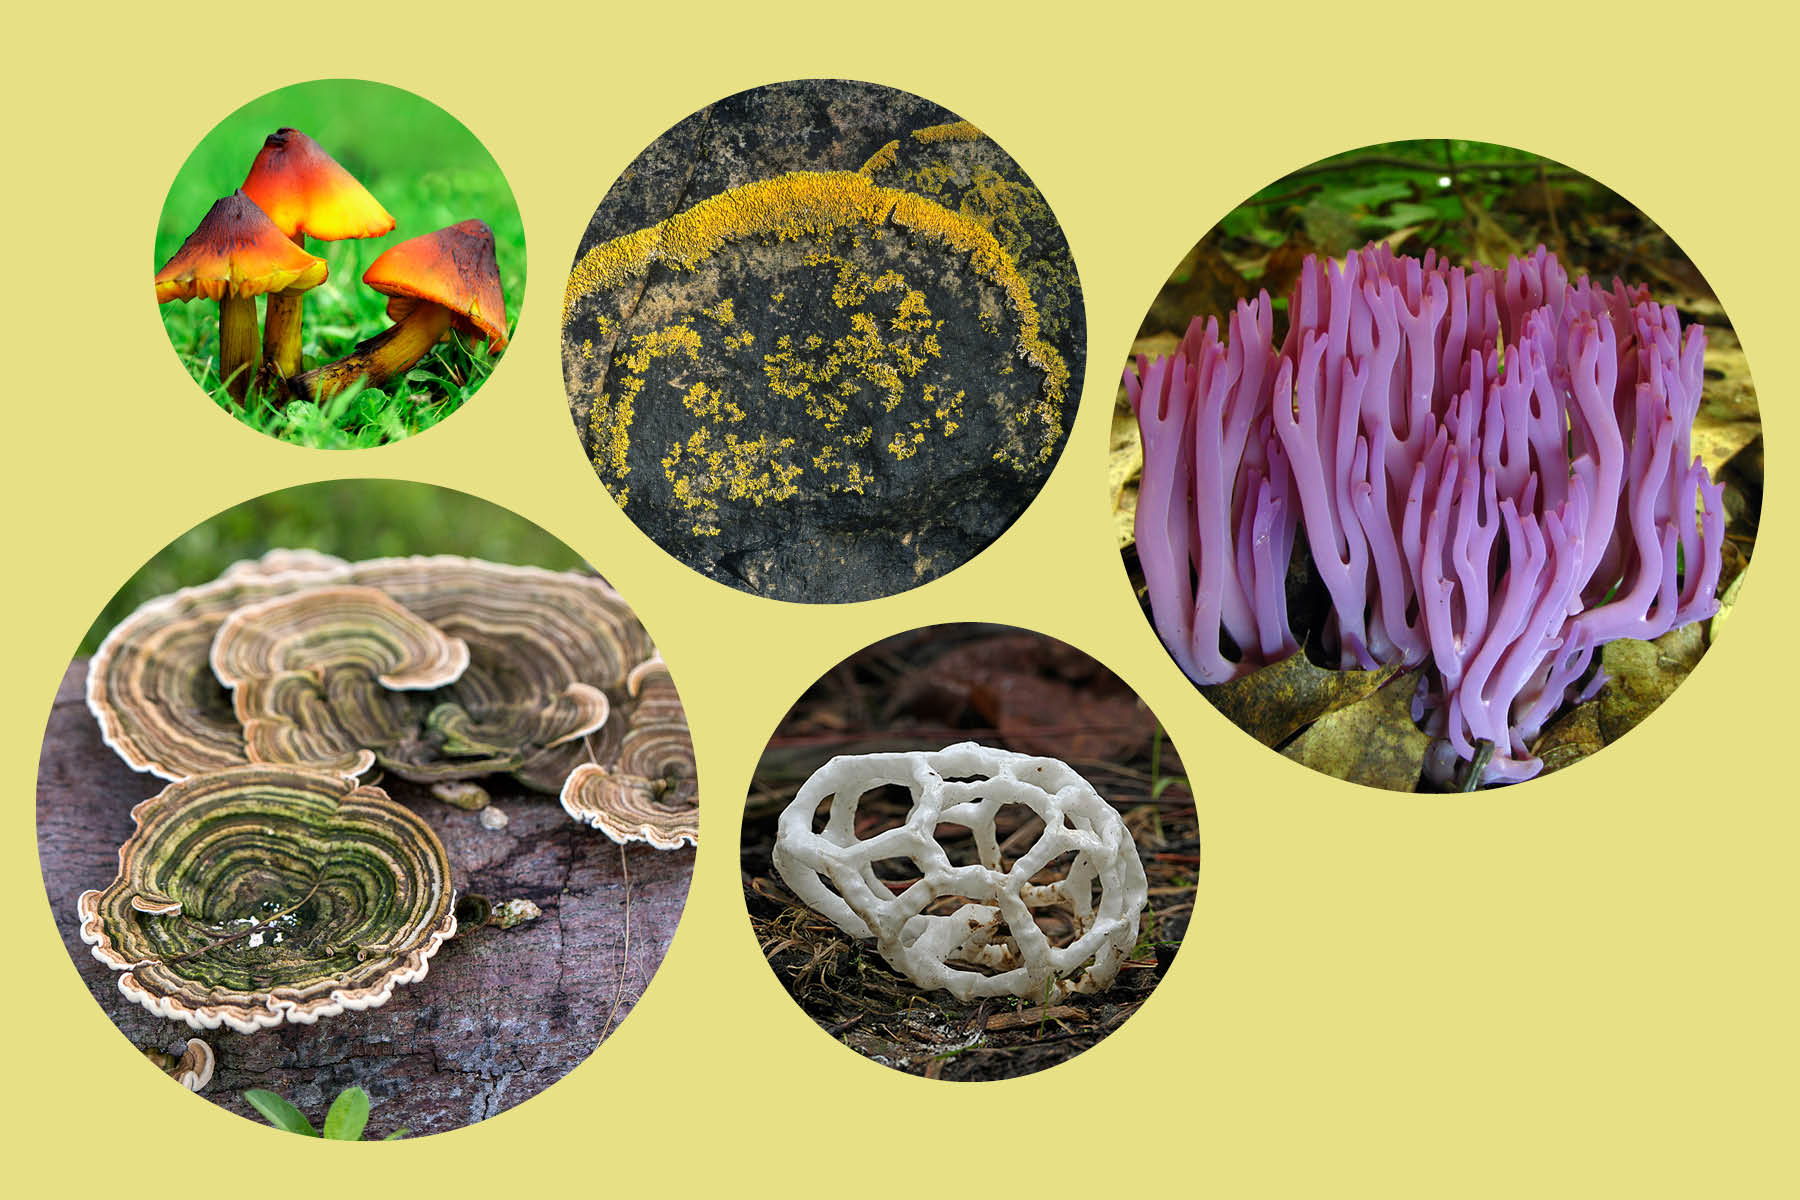 Five different fungi, including mushrooms, lichen and basket fungus.